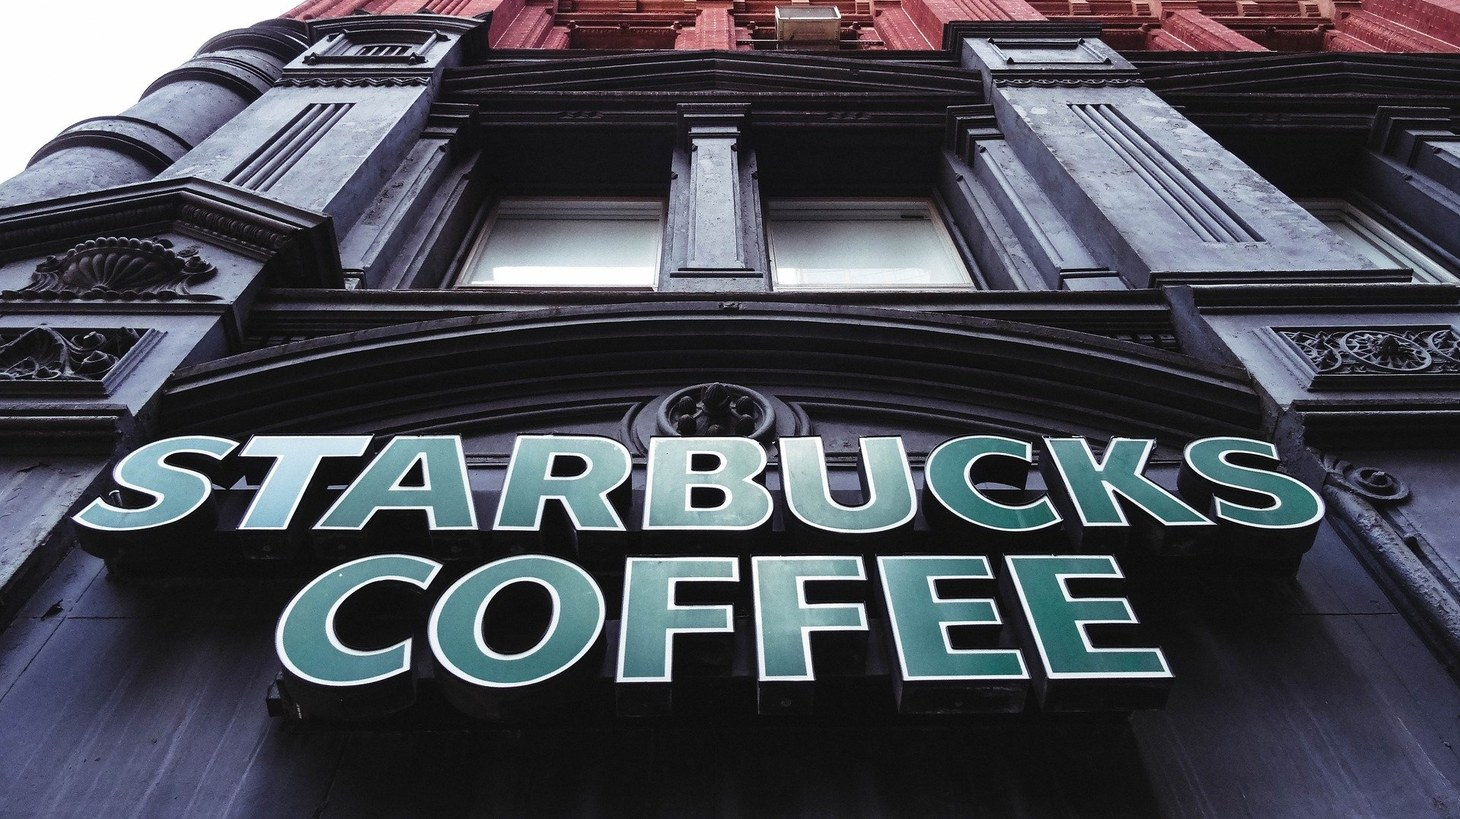 Large operators such as Starbucks have invested in technology, loyalty programs, and delivery apps prior to the pandemic which accounts to their success and growth in spite of the pandemic.